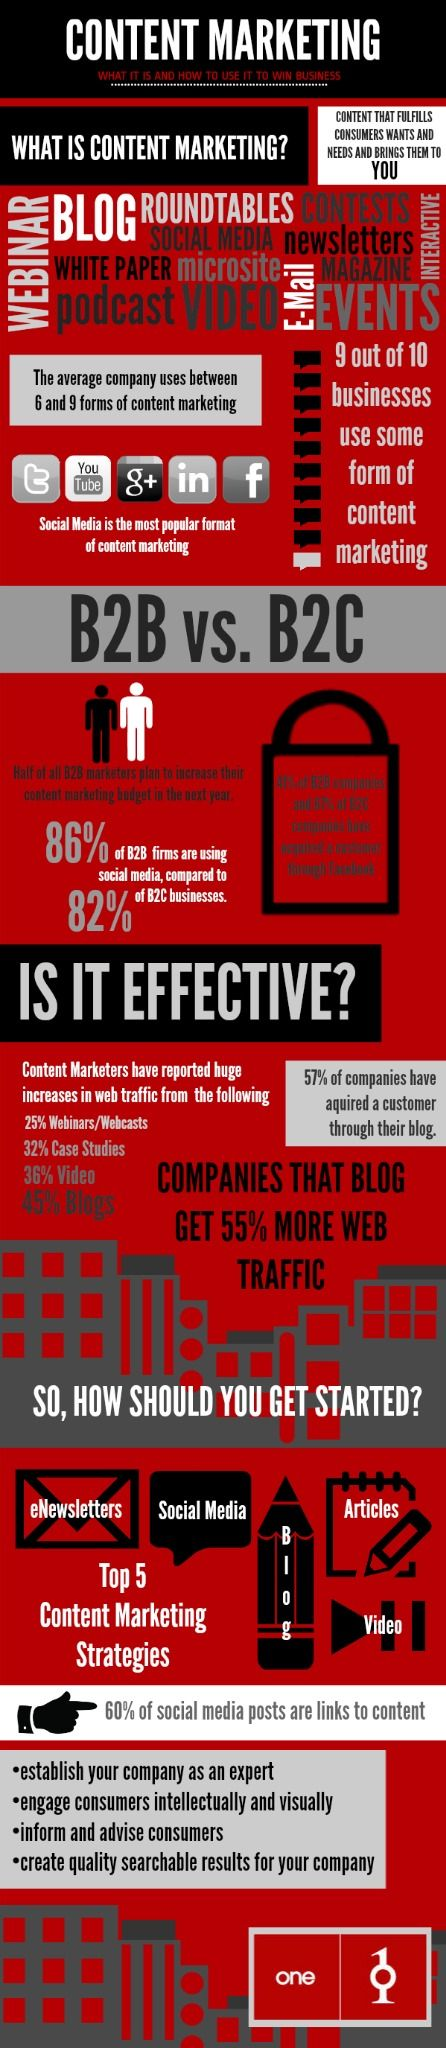 Content Marketing Infographic #contentmarketing